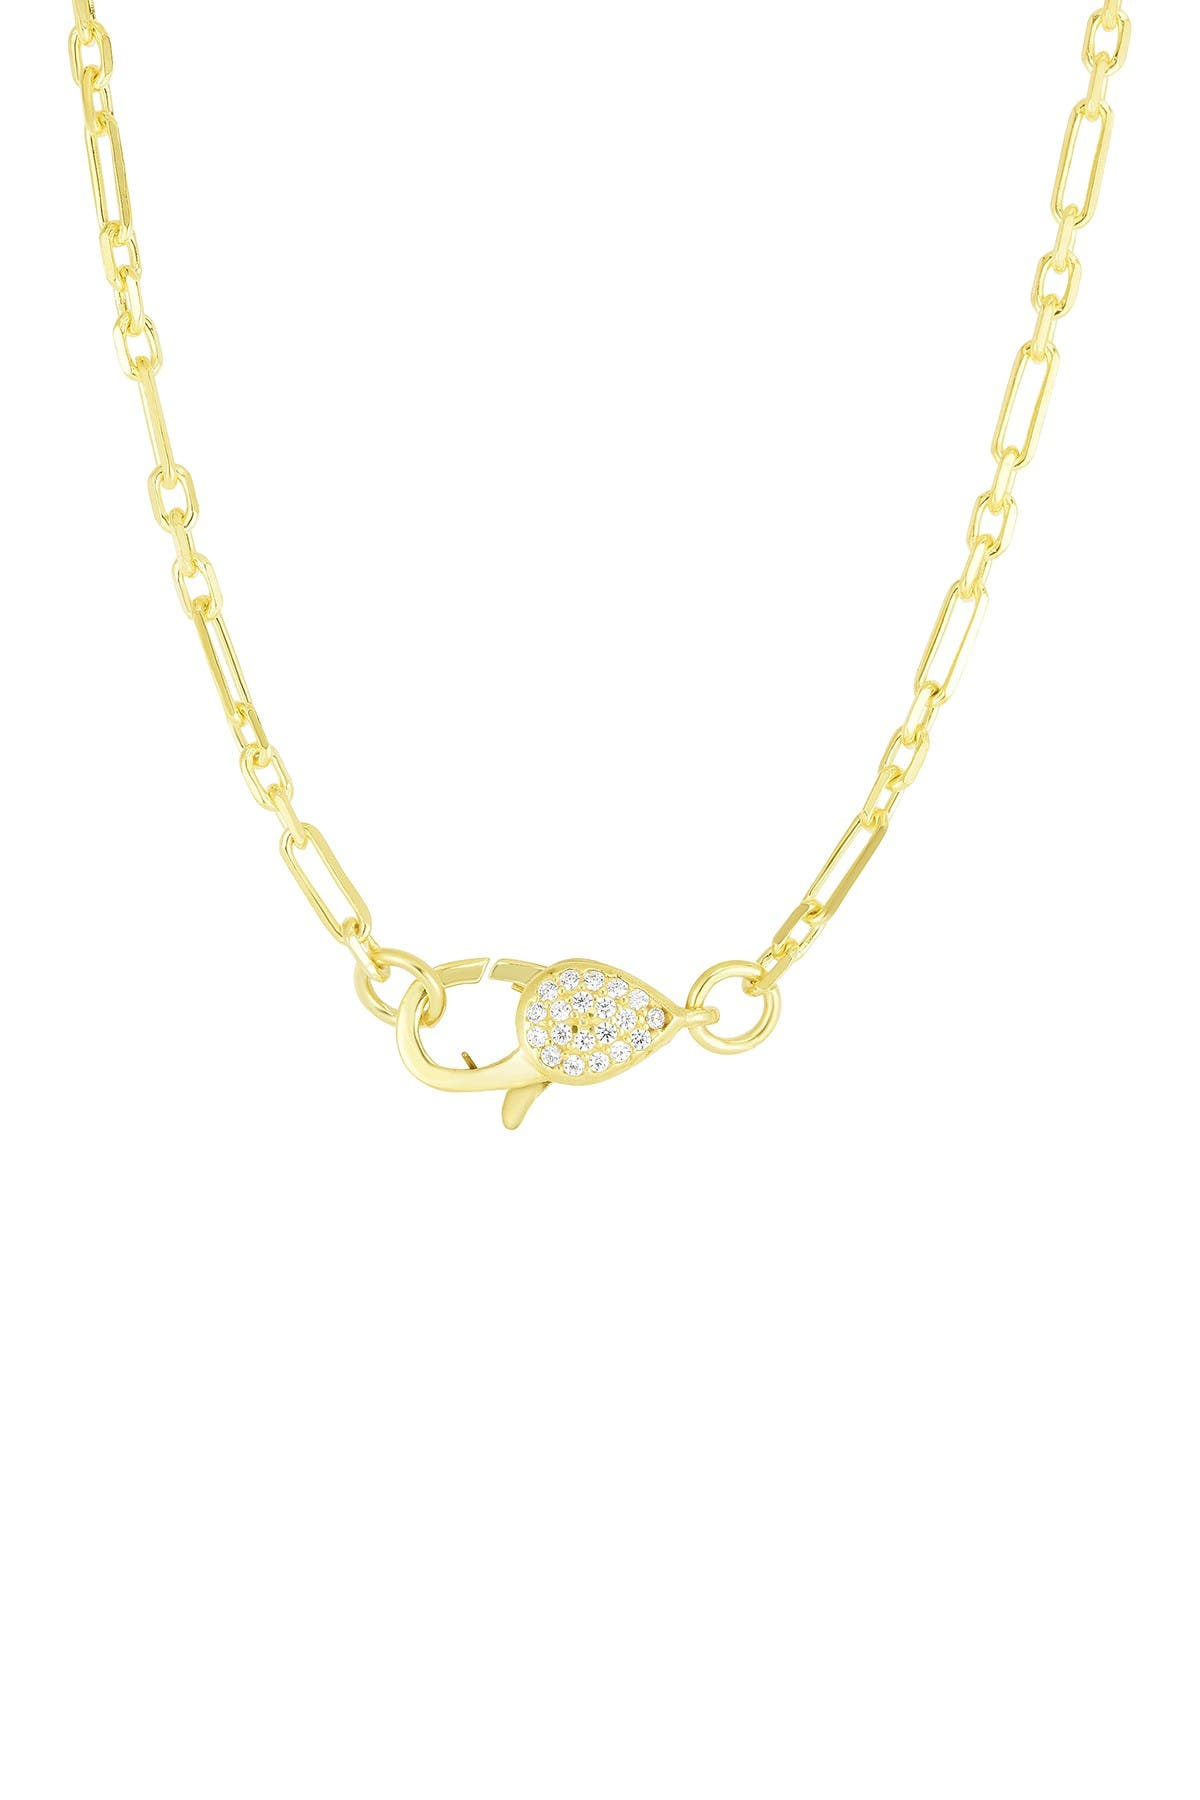 Image of Sphera Milano 14K Yellow Gold Plated Sterling Silver Over Size Pave CZ Clasp Chain Necklace